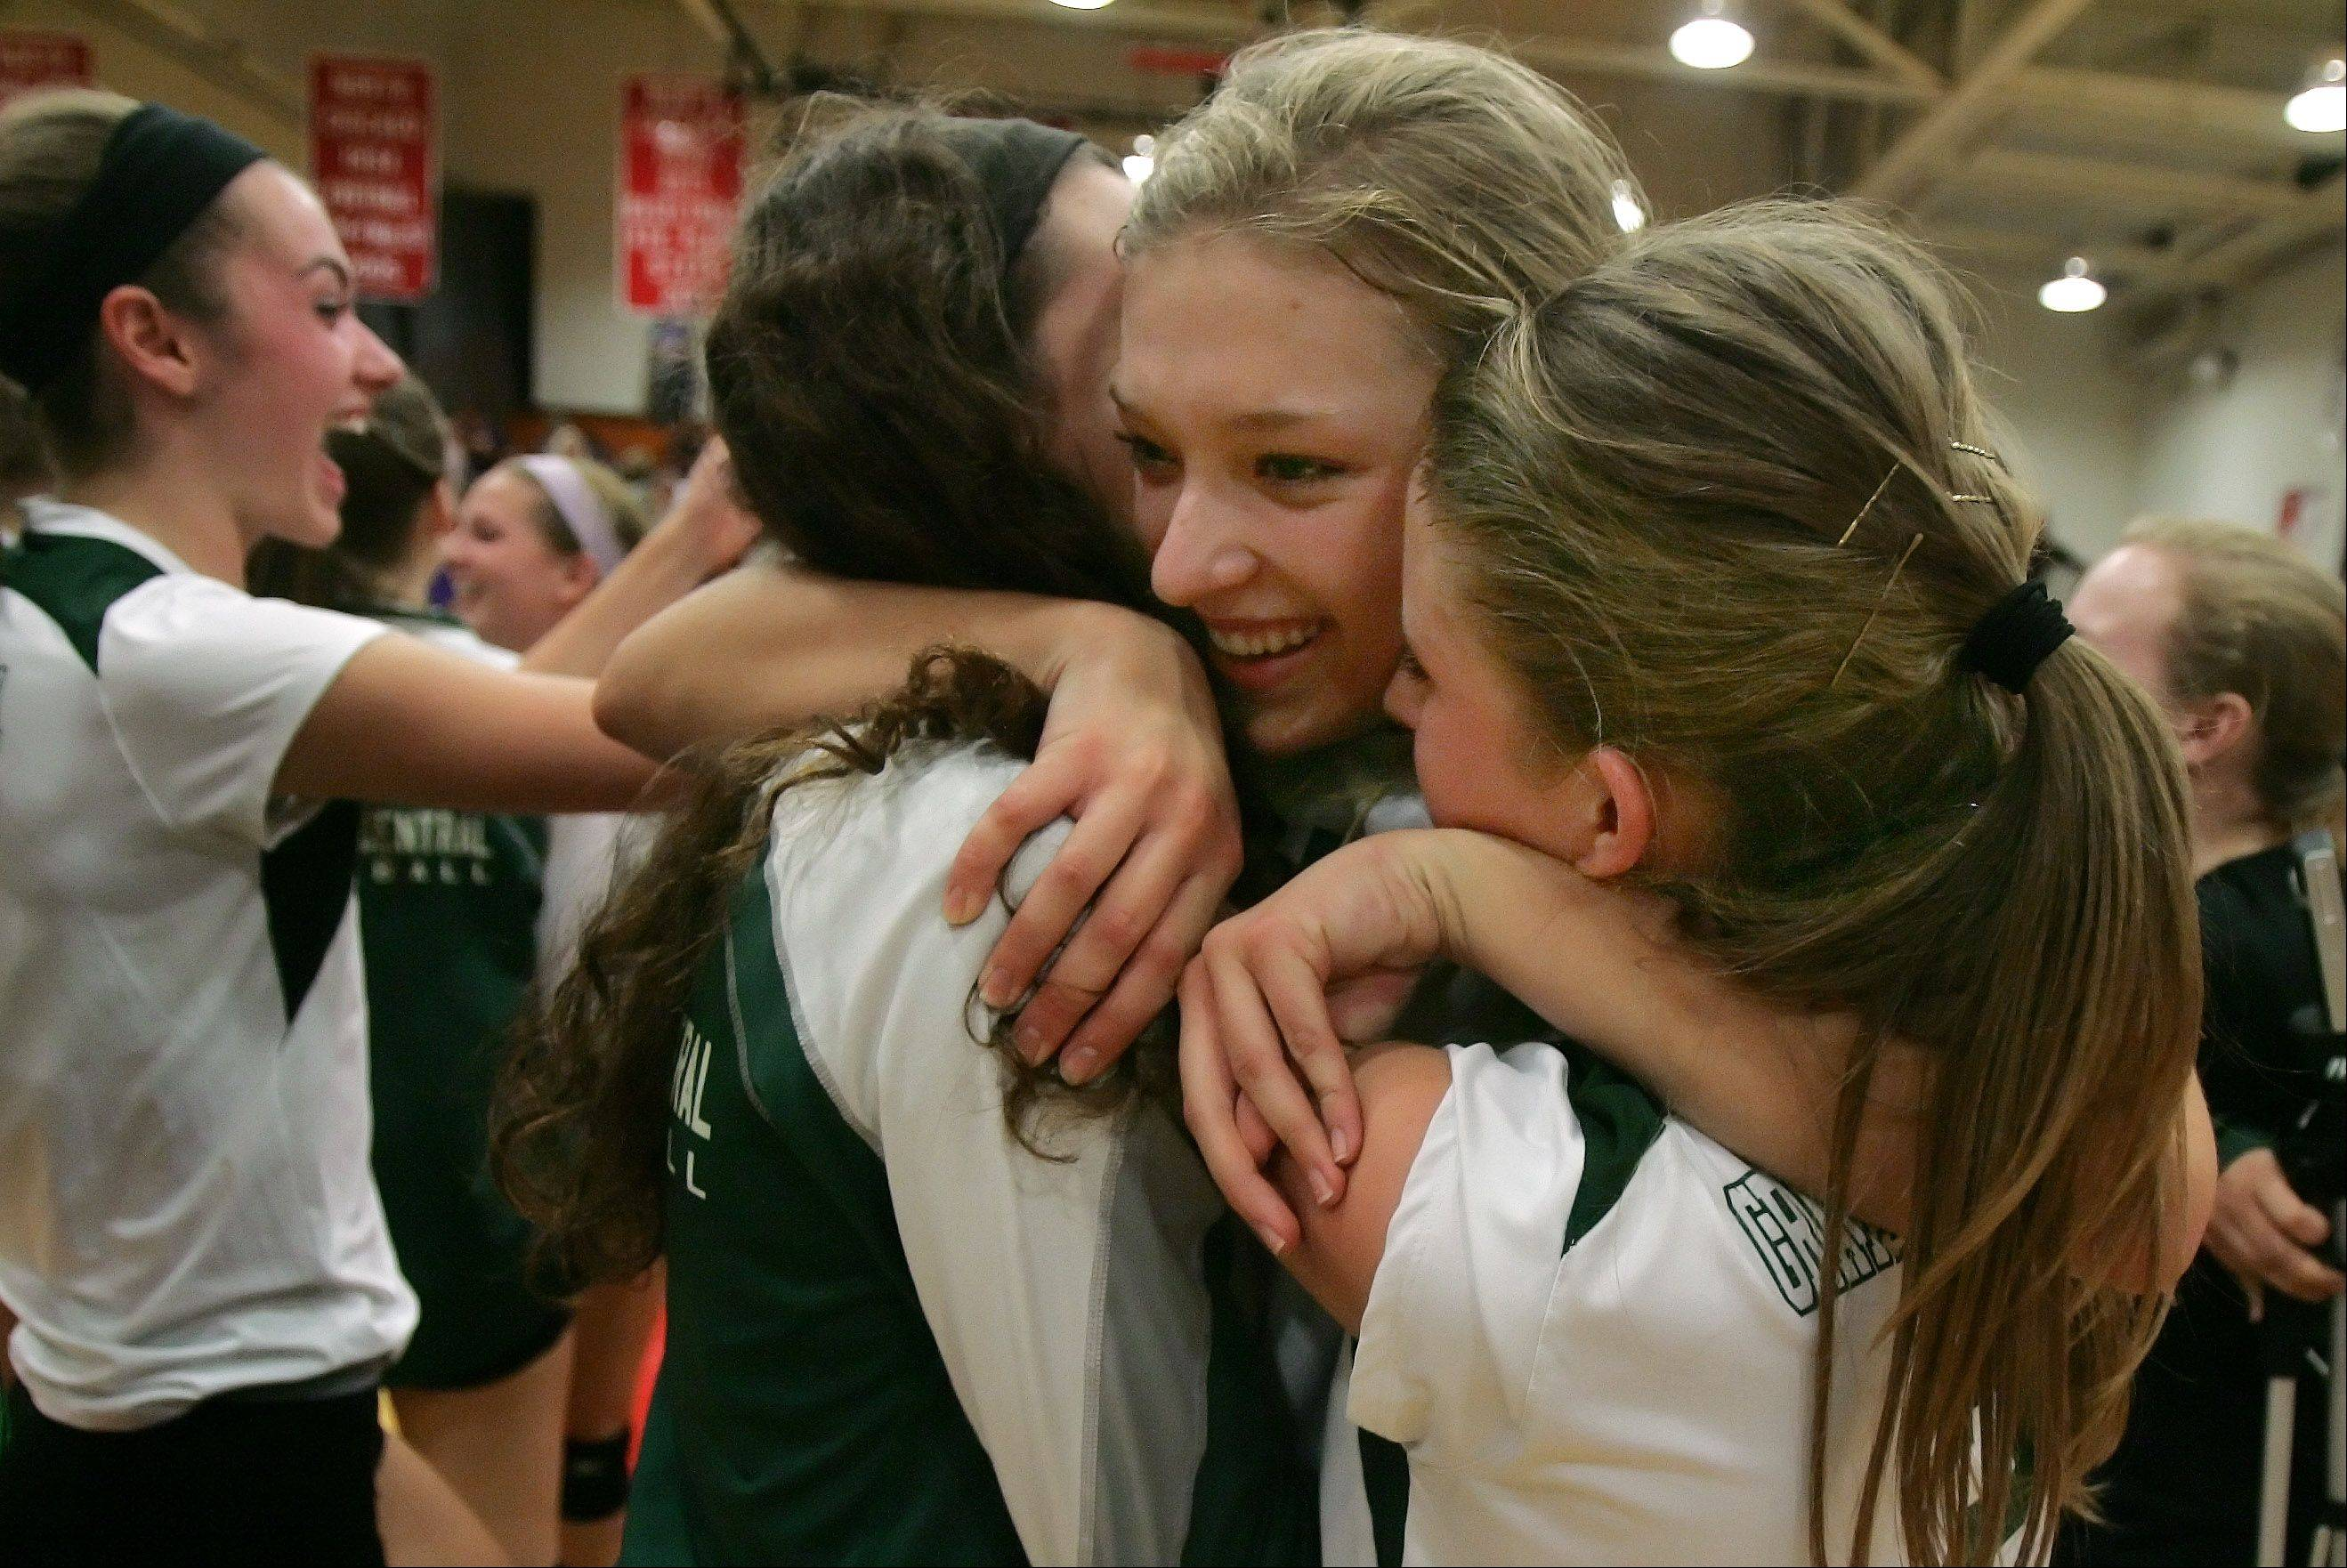 Grayslake Central's Lexi Beckman, center, hugs teammate Anna Basten, left, and Anna Strickland after the Rams won the Class 3A girls regional final against Wauconda at North Chicago.